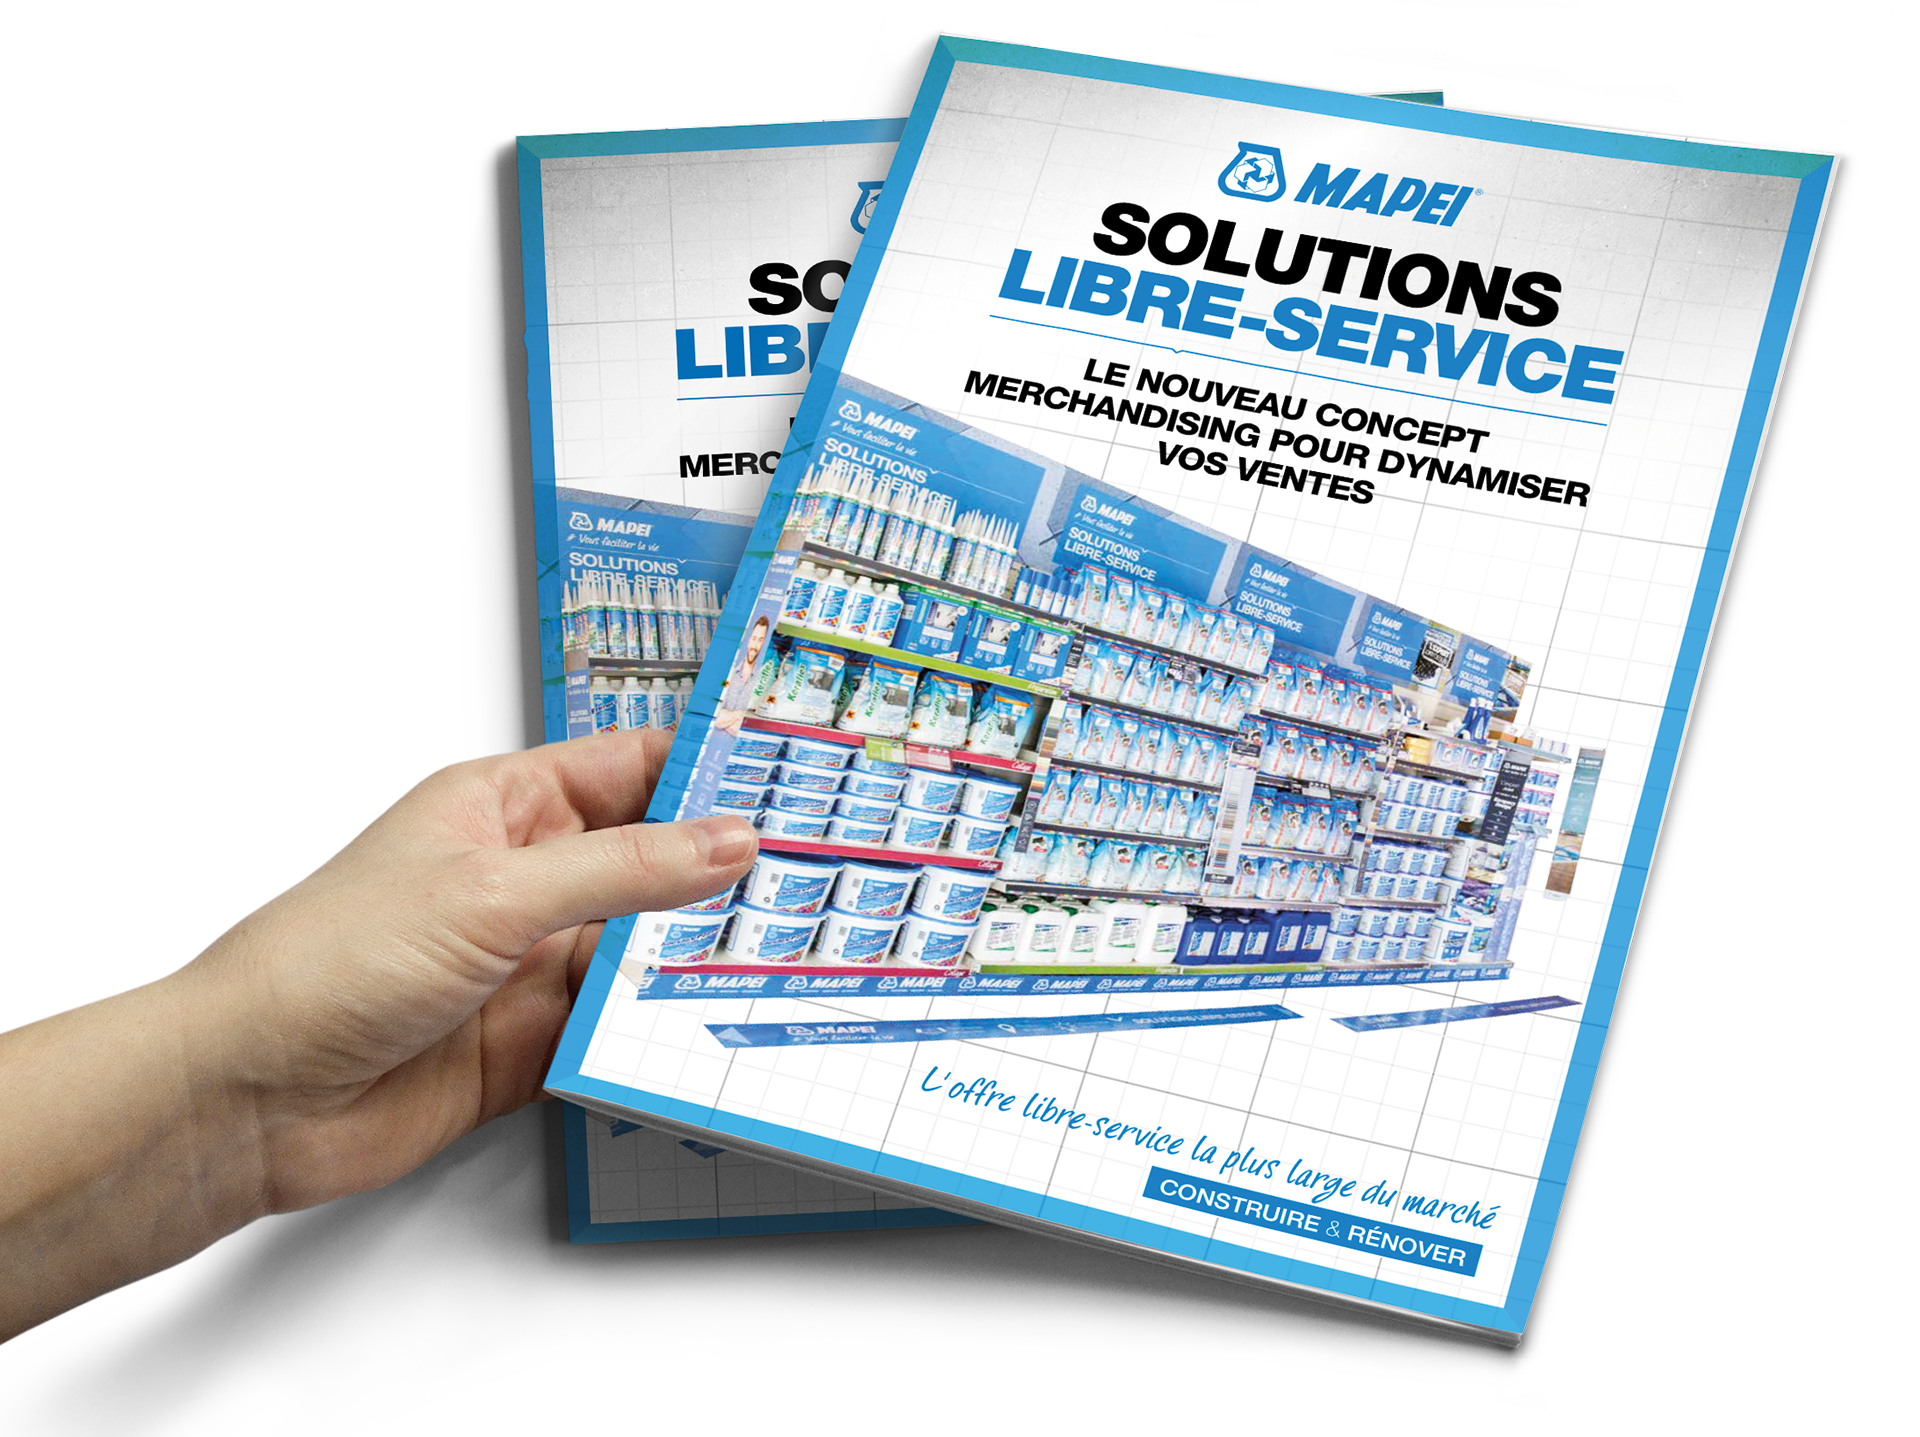 MAPEI Solutions Libre-service by Convergence